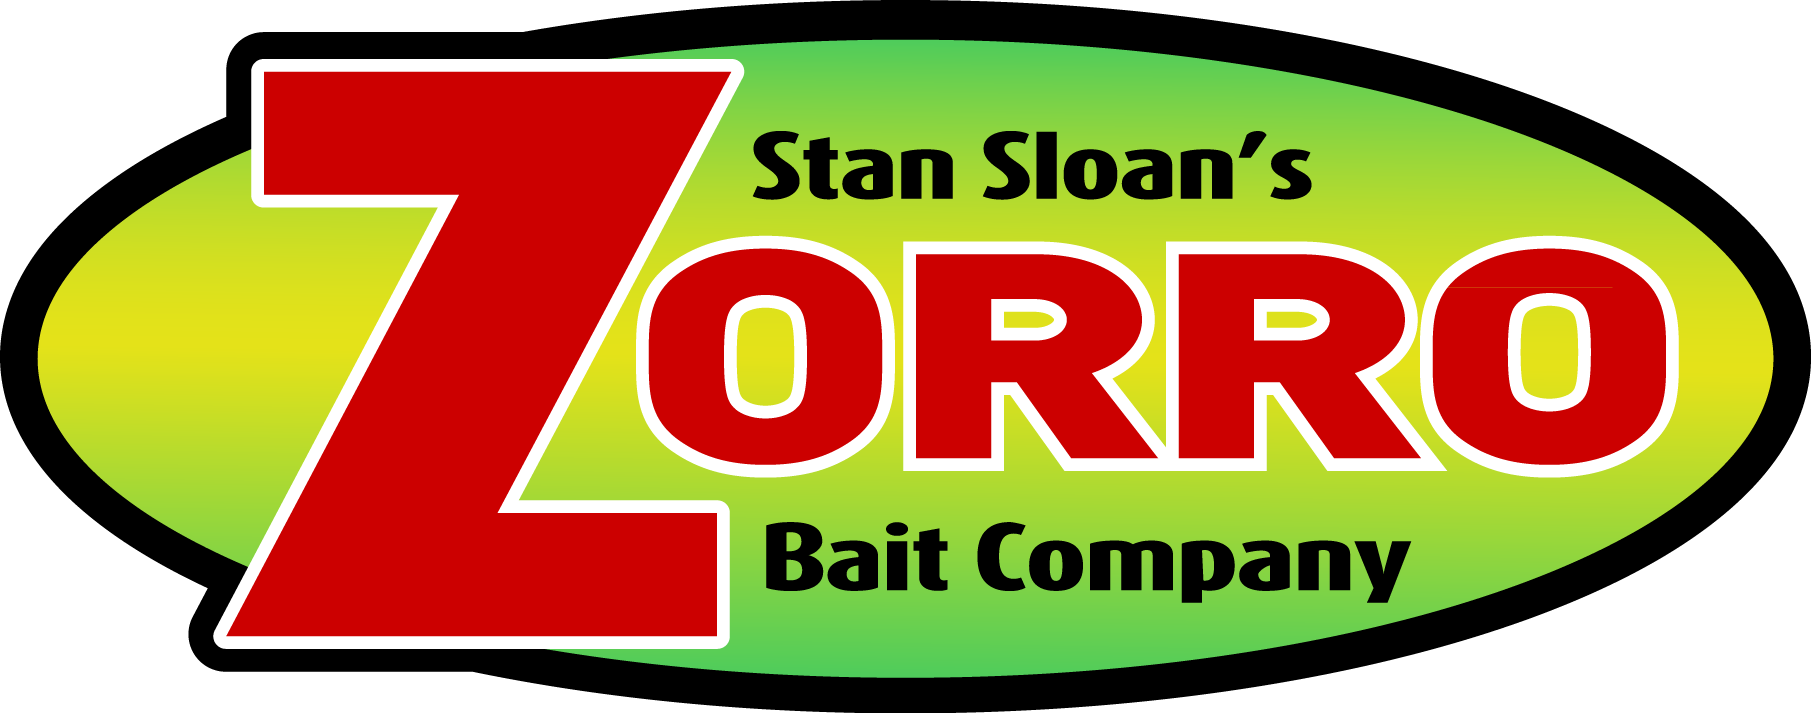 Zorro Bait Logo<div style='clear:both;width:100%;height:0px;'></div><span class='cat'>Logos and Printwork</span>